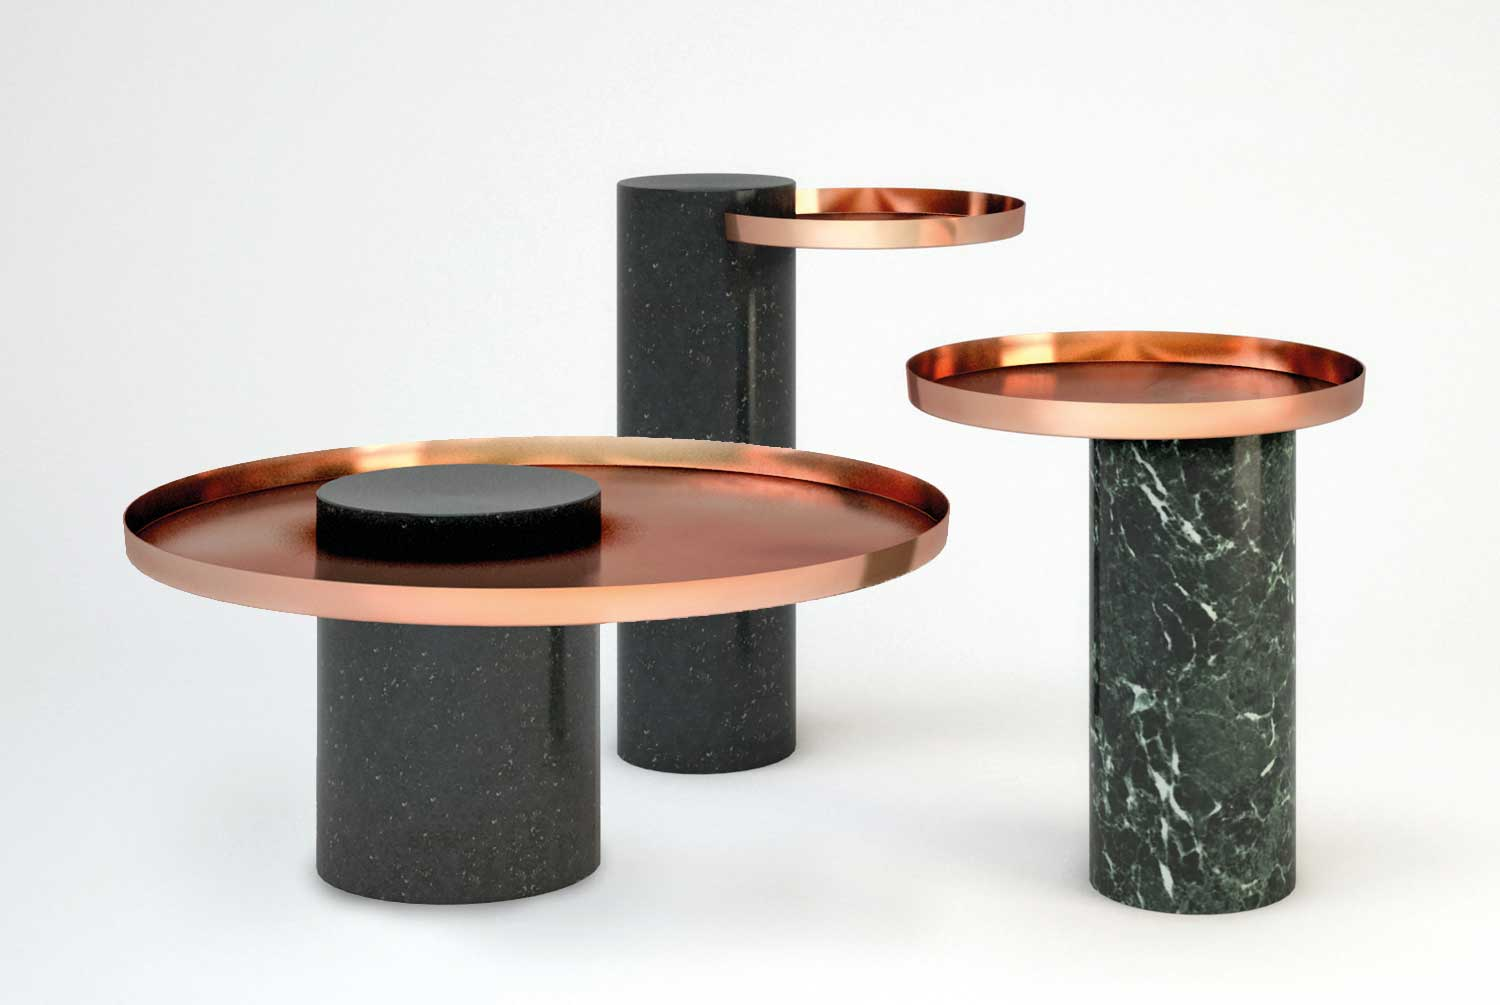 New Products By Sebastian Herkner Launching This Year